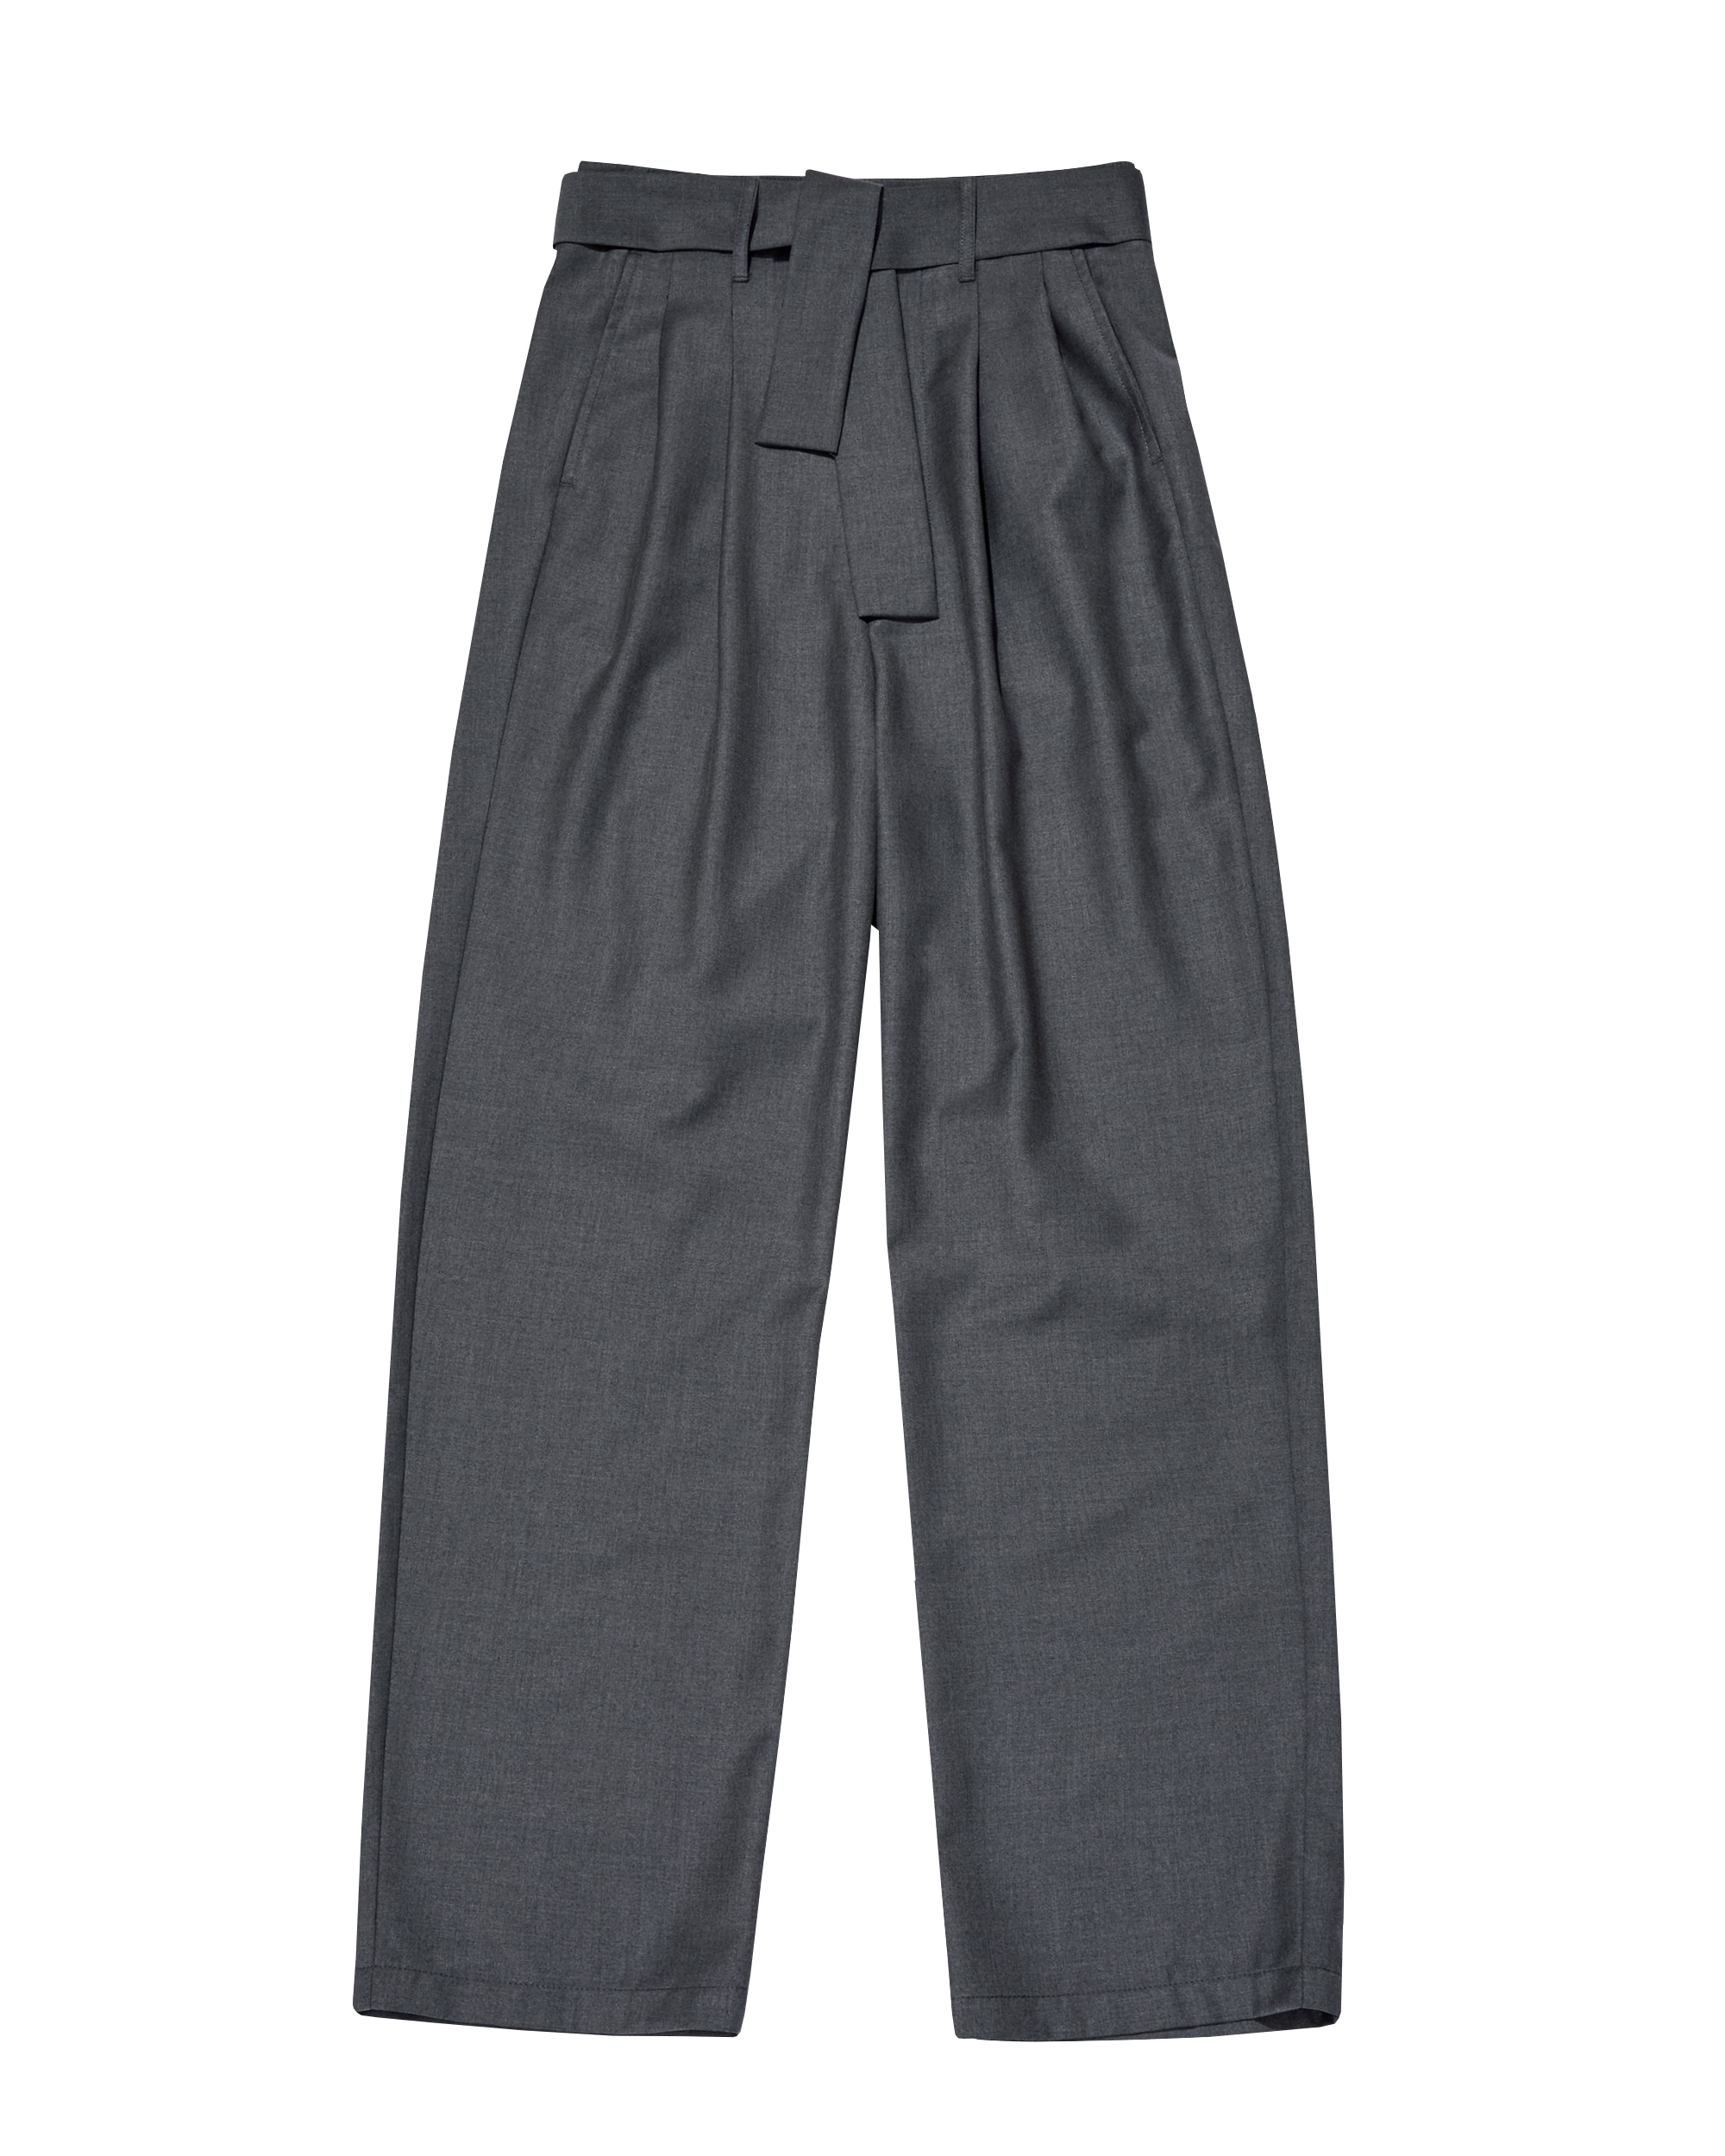 shop-designer-pant-gray.jpg